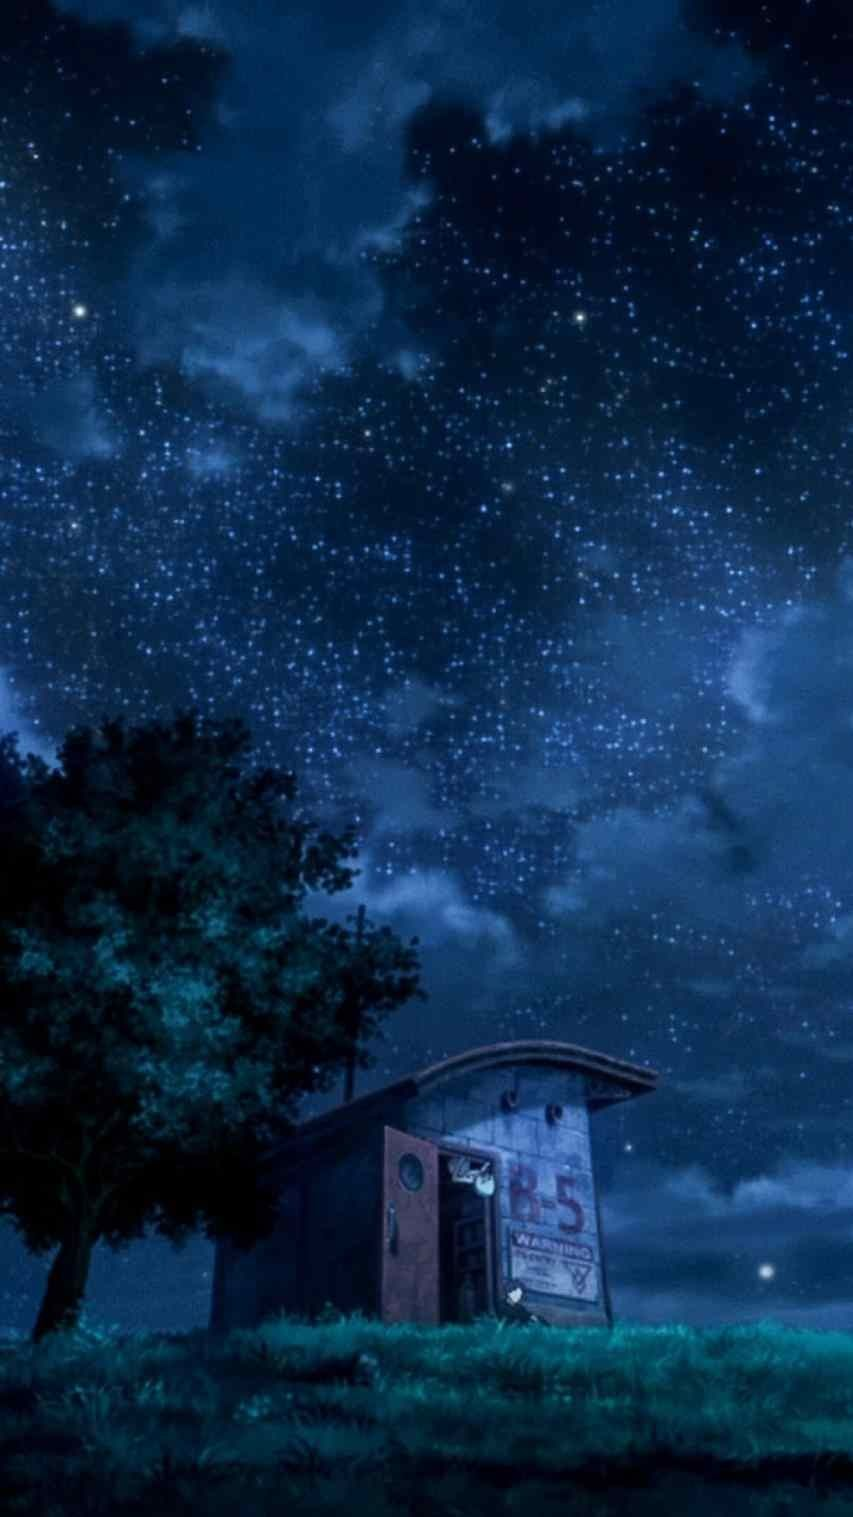 Dark Anime Scenery Wallpapers Images Scenery Wallpaper Anime Scenery Anime Scenery Wallpaper